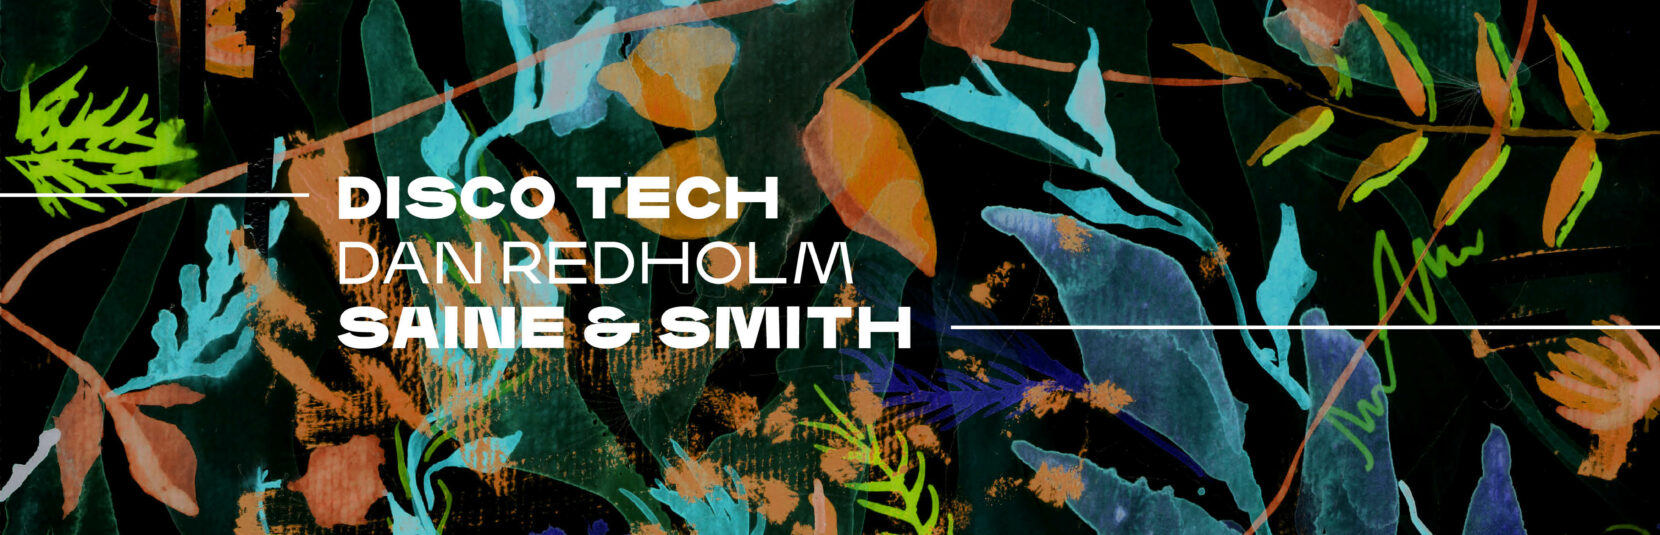 Disco Tech, Dan Redholm, Saine & Smith